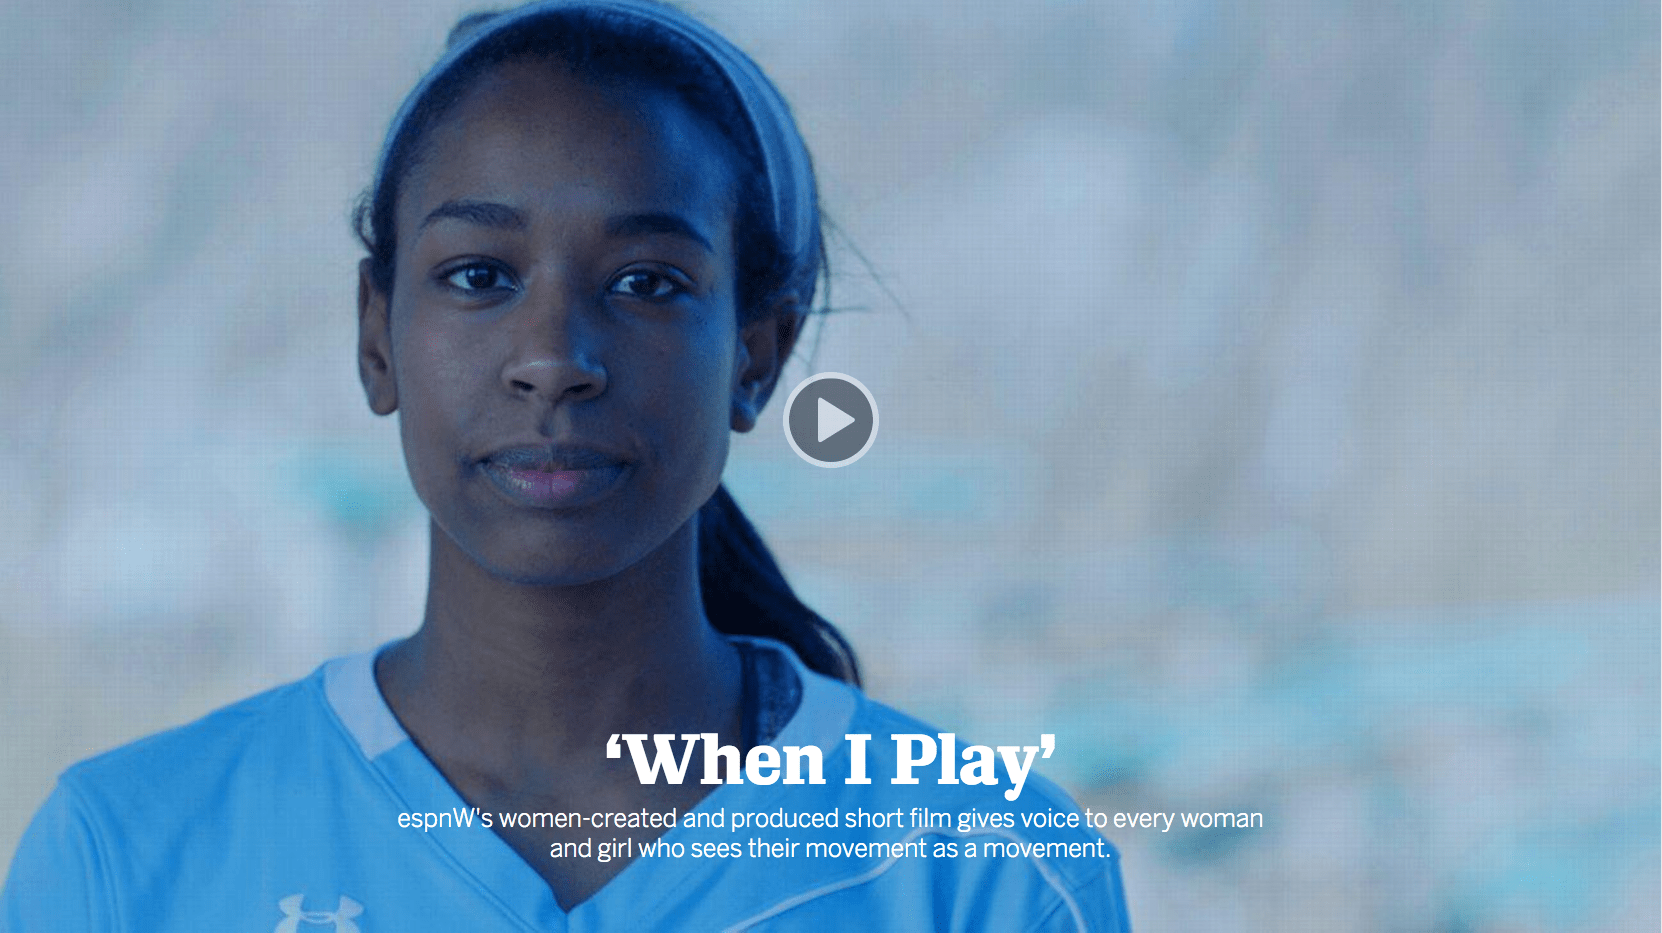 When I Play - Watch it on ESPNW